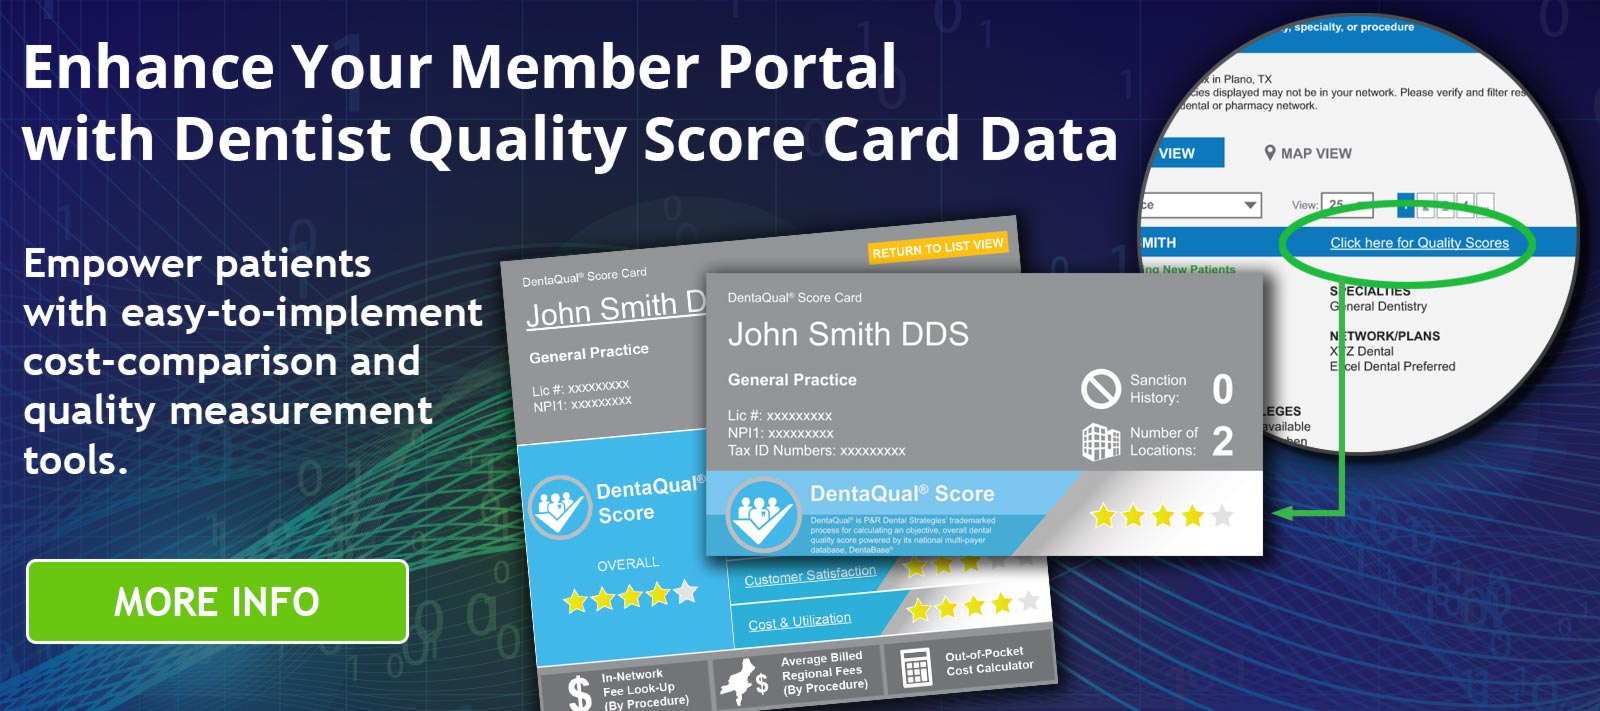 Enhance Your Member Portal with Dentist Quality Score Card Data - DentaQual